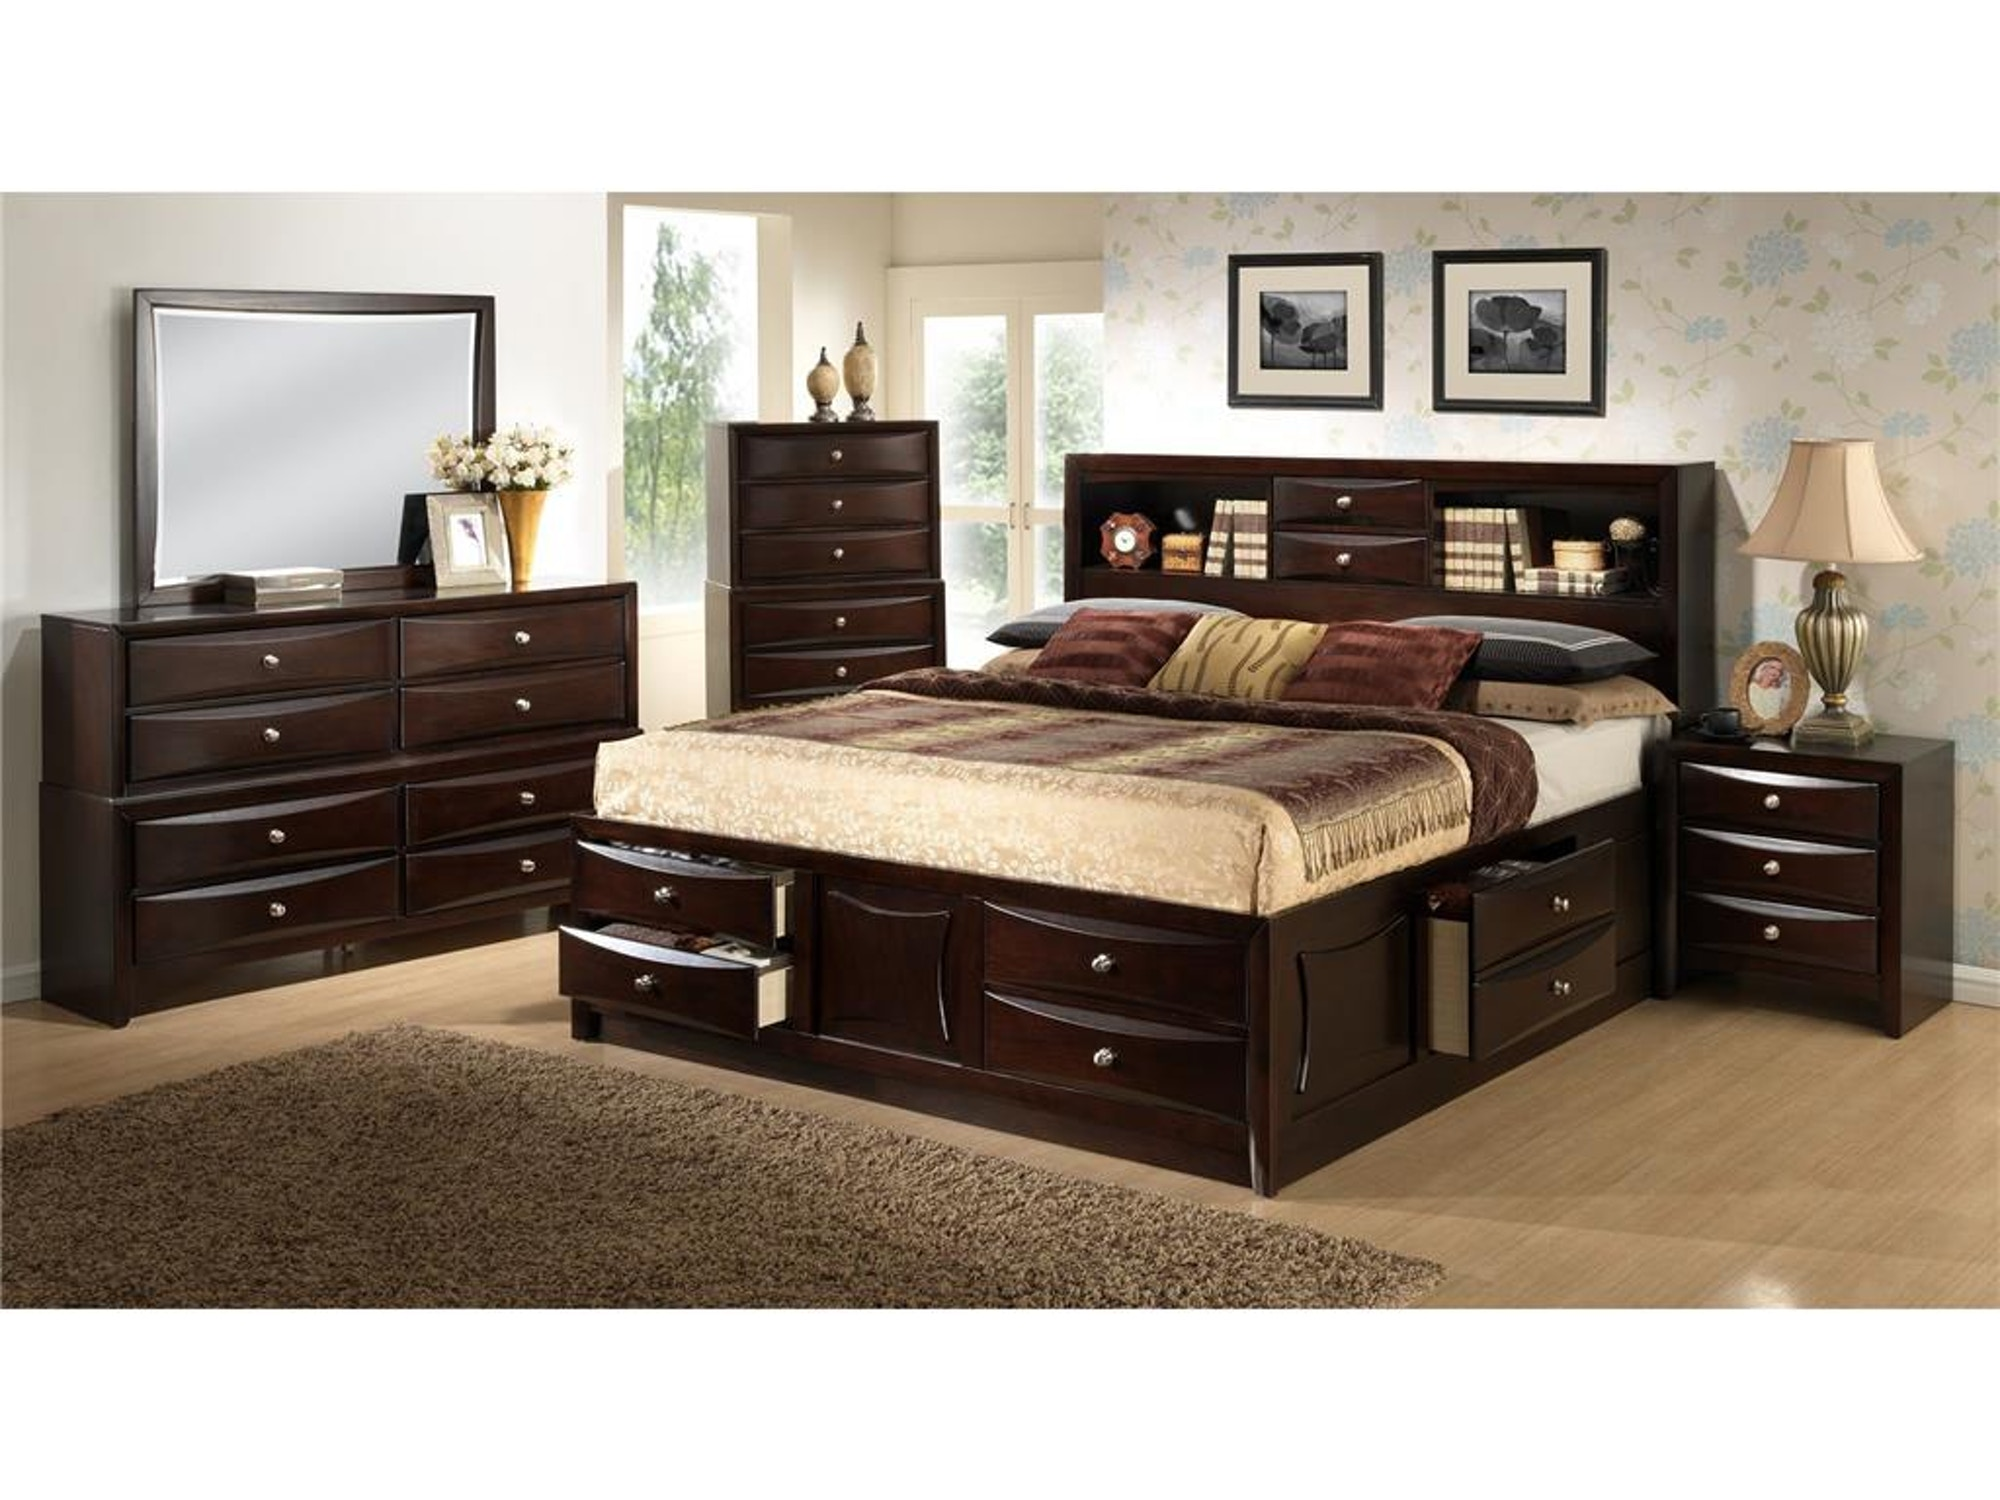 Davida Storage Bed - King 583932